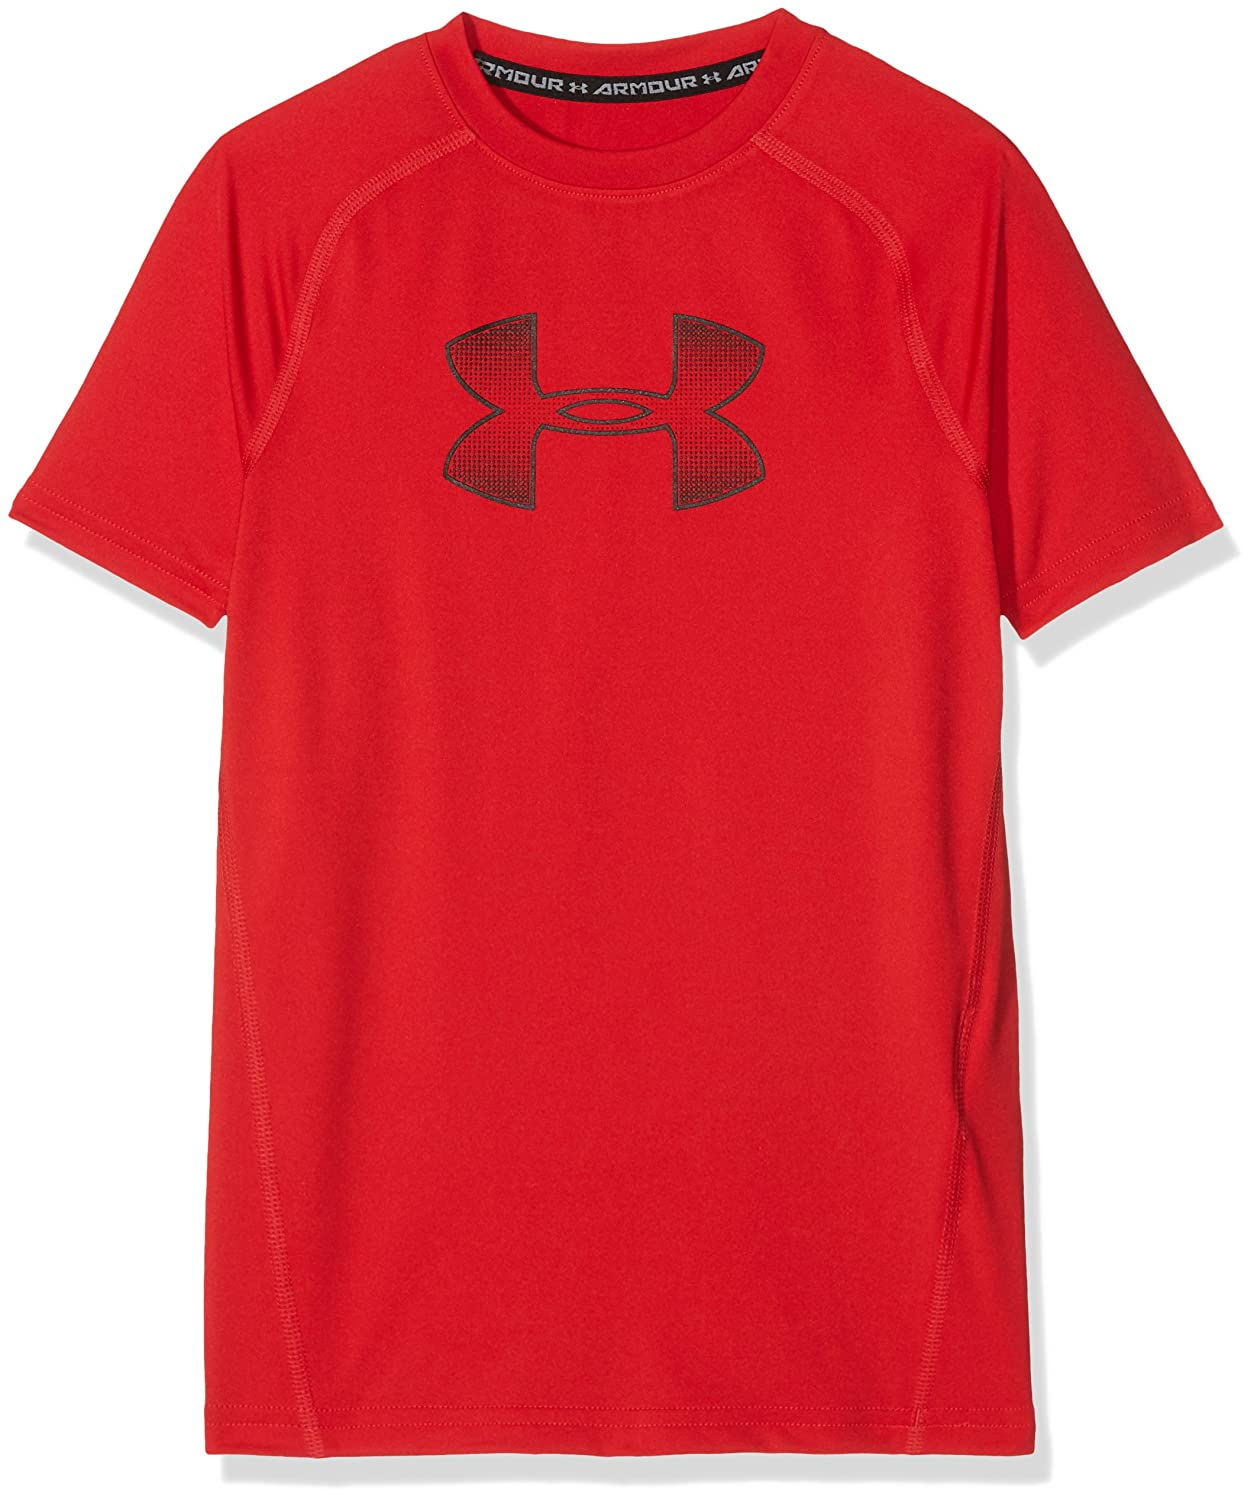 Under Armour Boys' HeatGear Armour Short Sleeve Fitted Shirt Under Armour Apparel 1289957